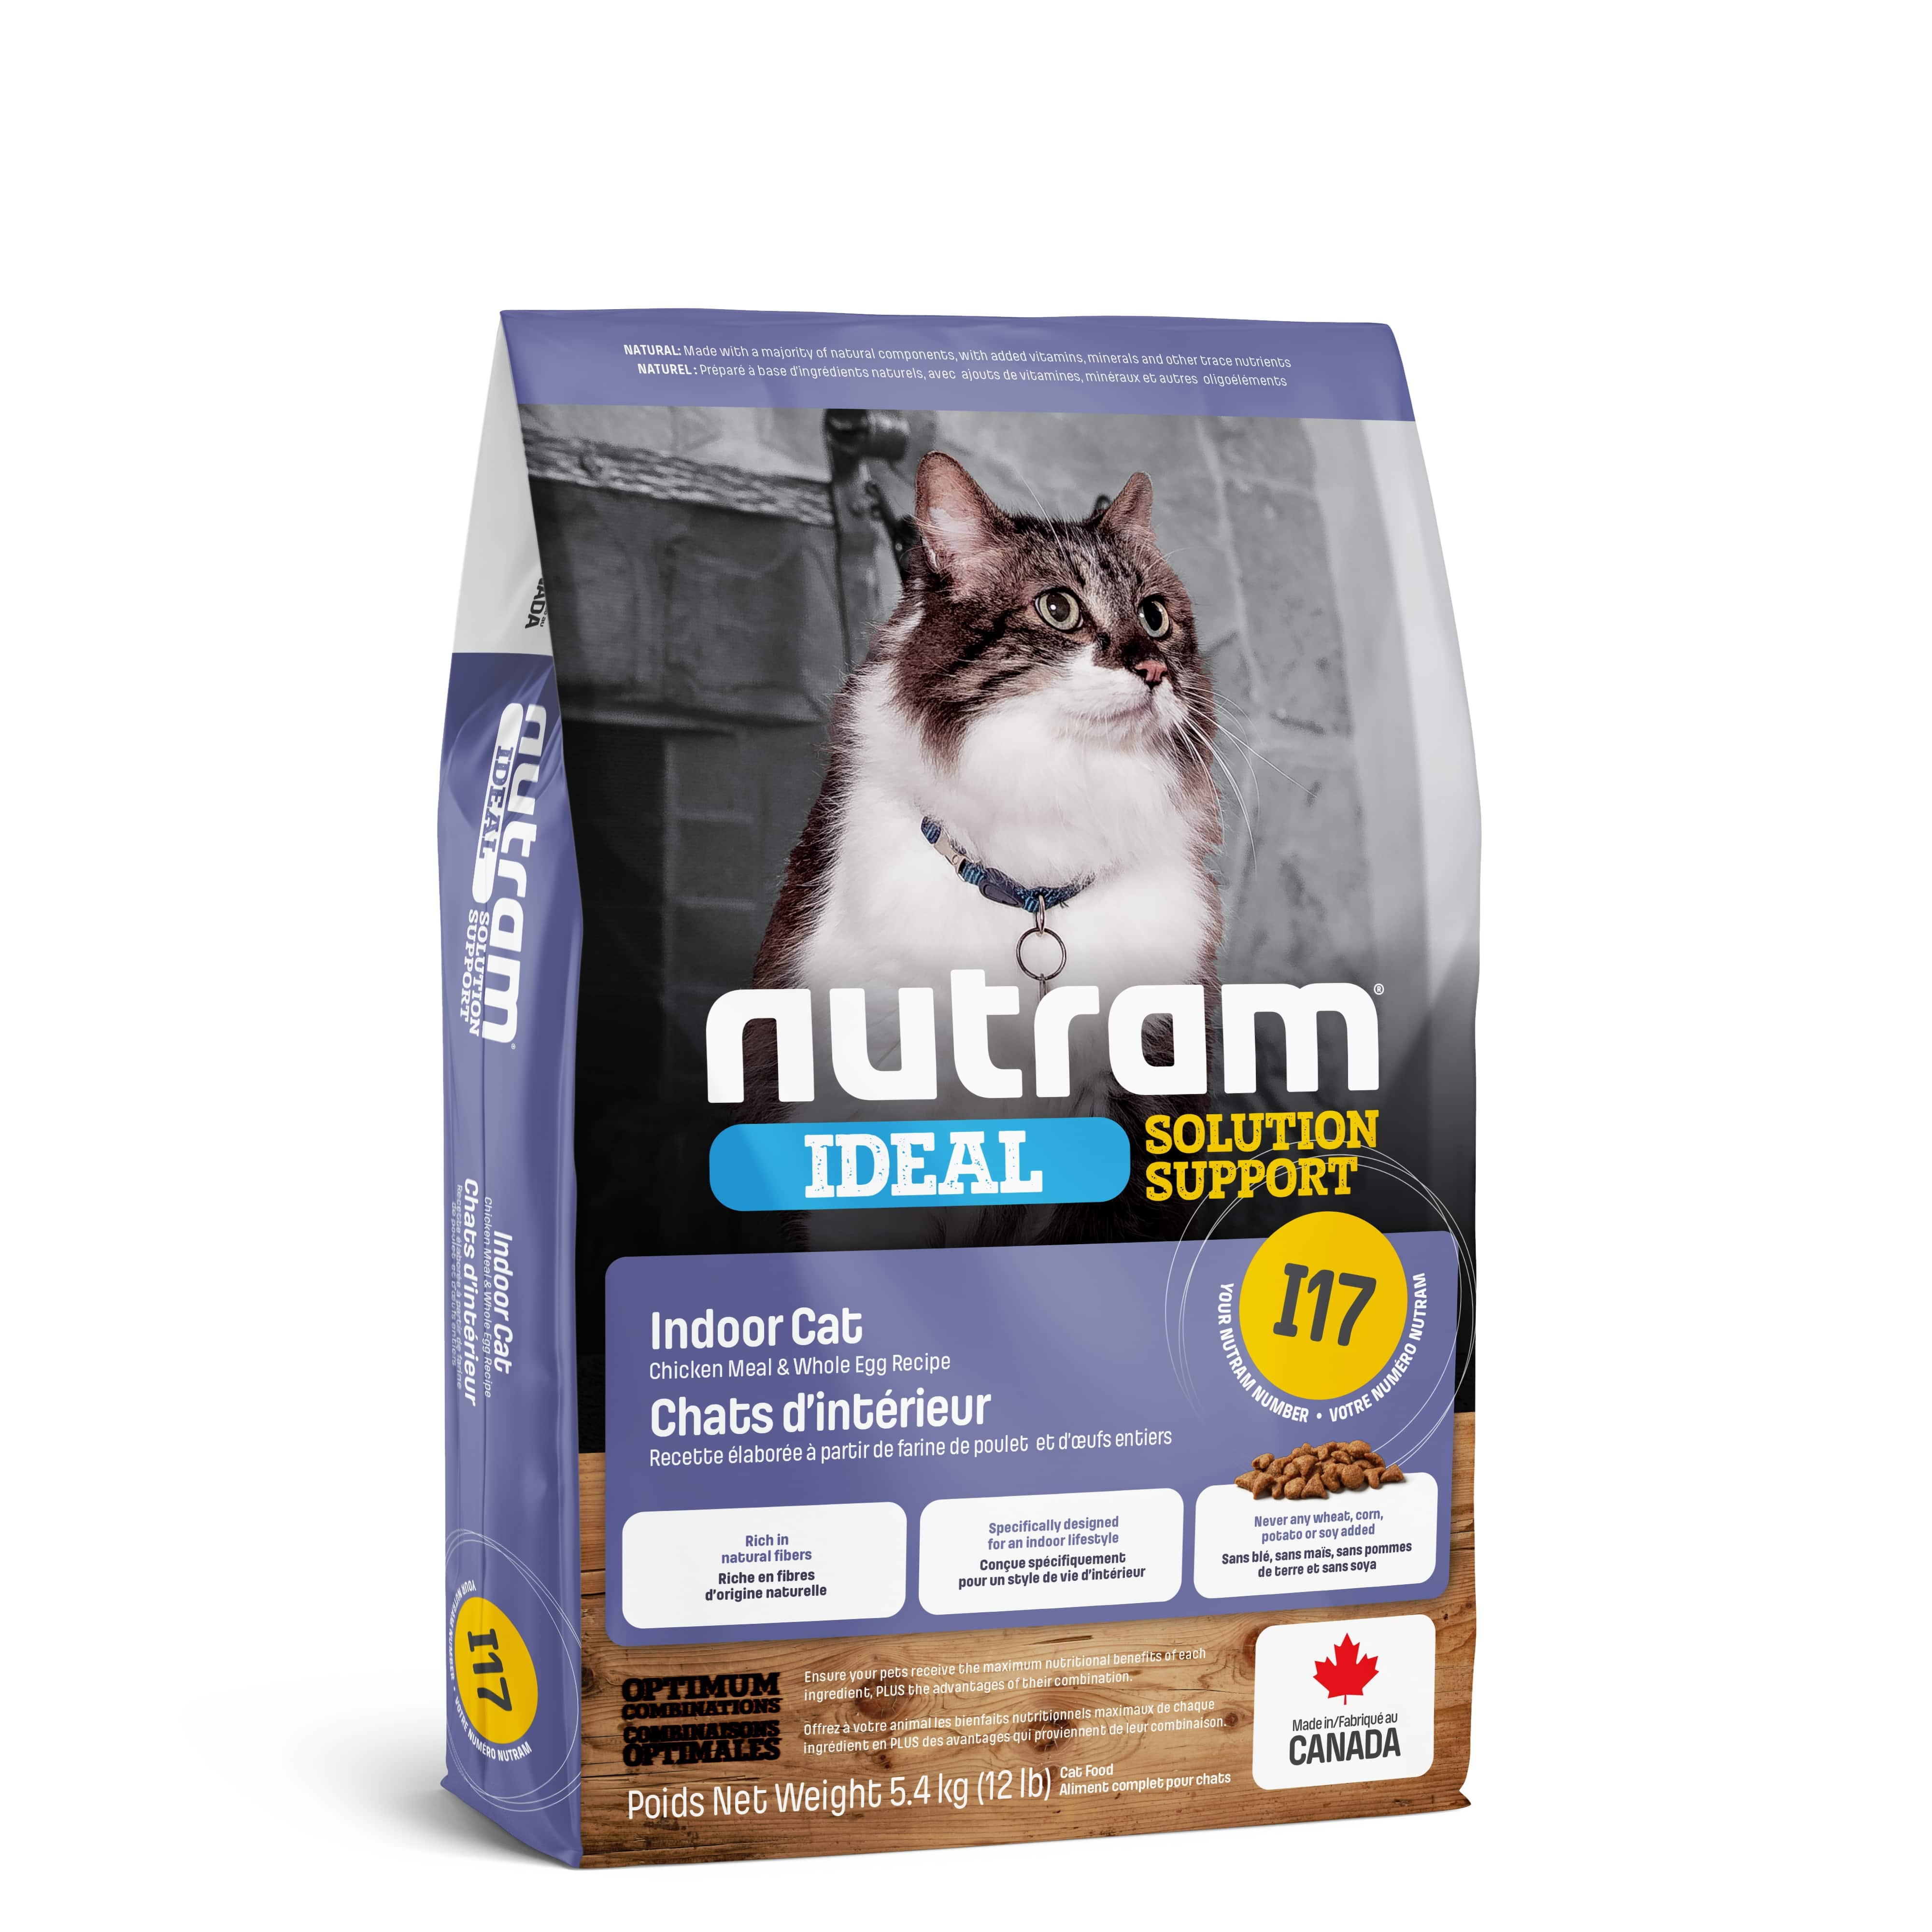 I17 Nutram Ideal Solution Support® Finicky Indoor Cat Food